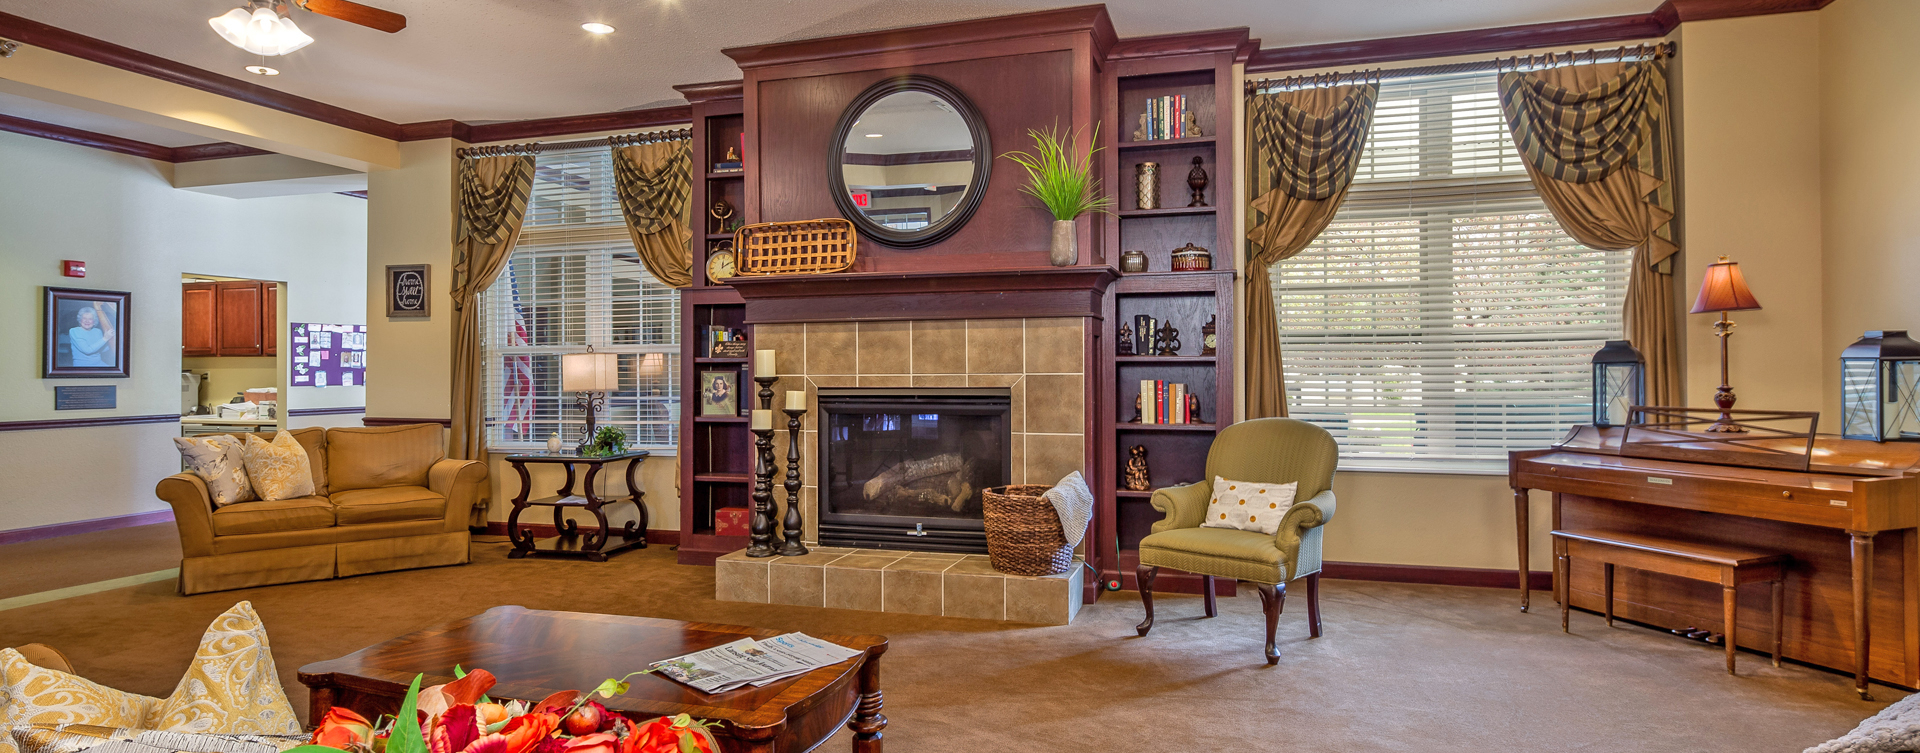 Snooze in your favorite chair in the living room at Bickford of Okemos